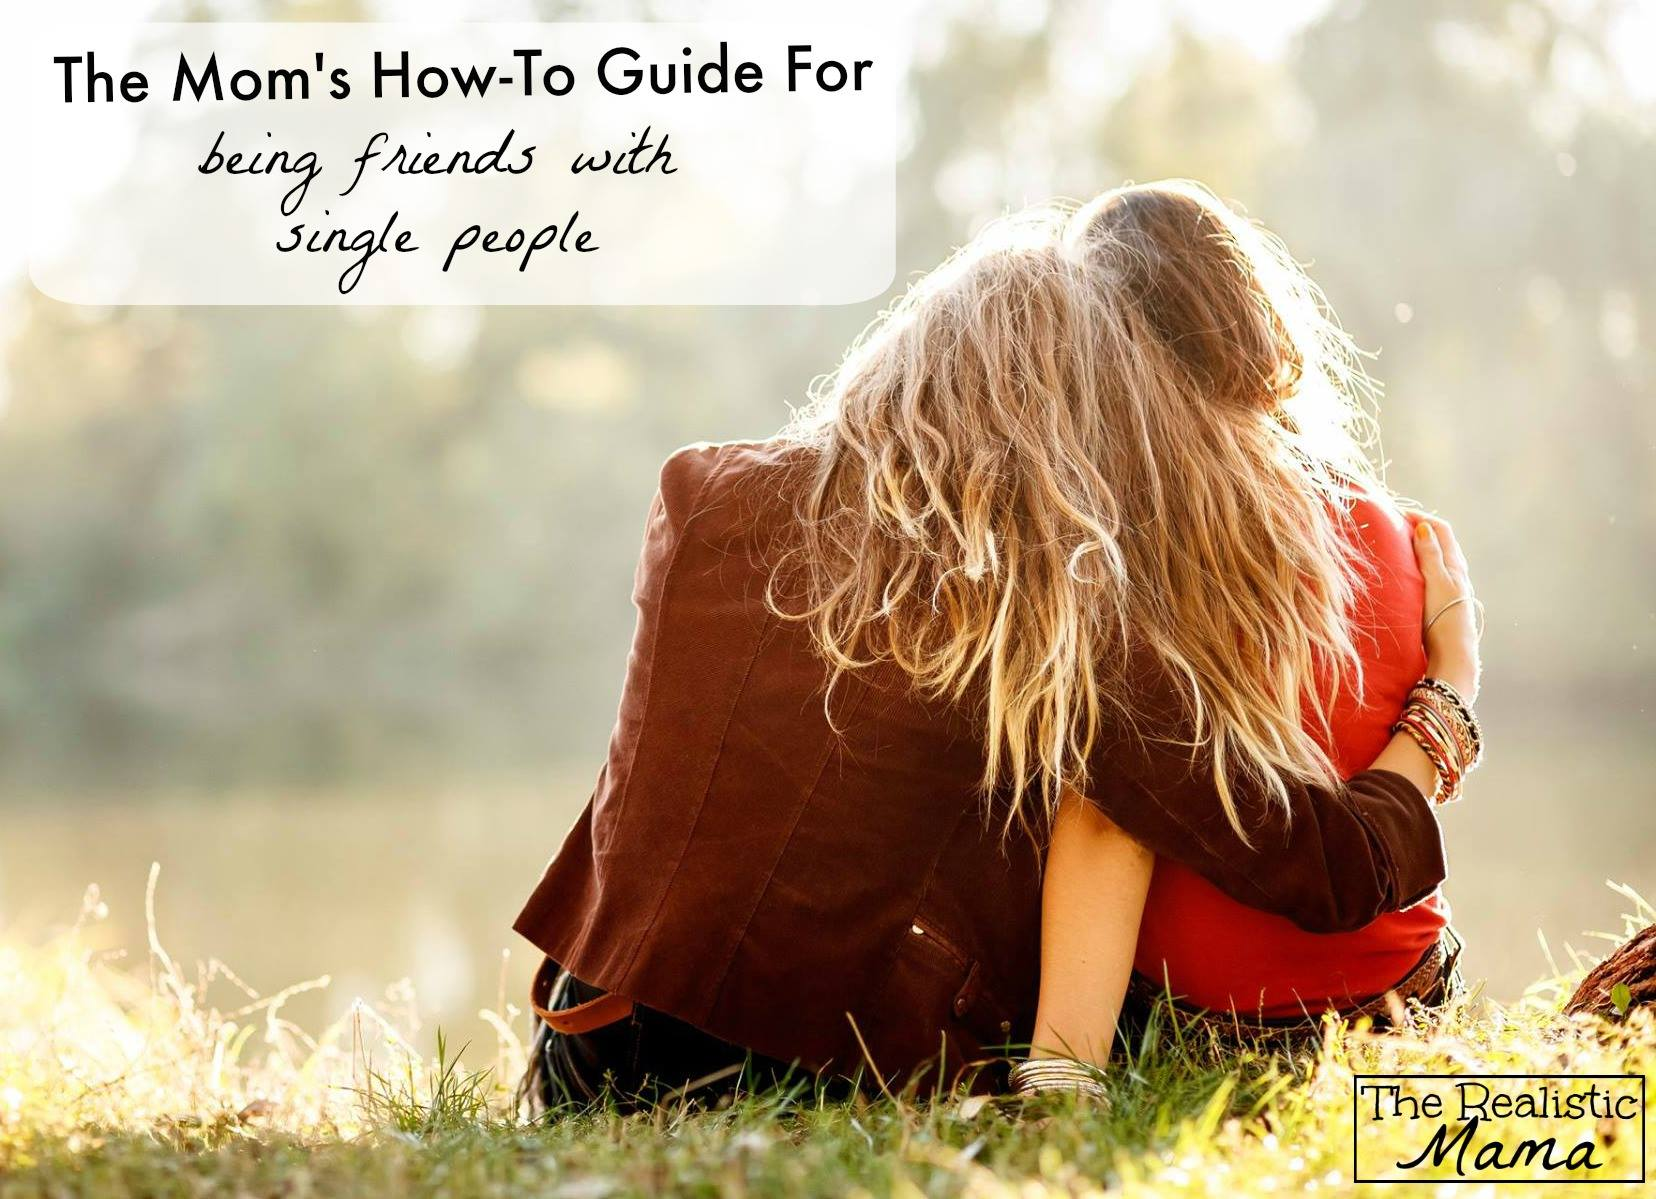 Mom's Guide For Being Friends With Single People